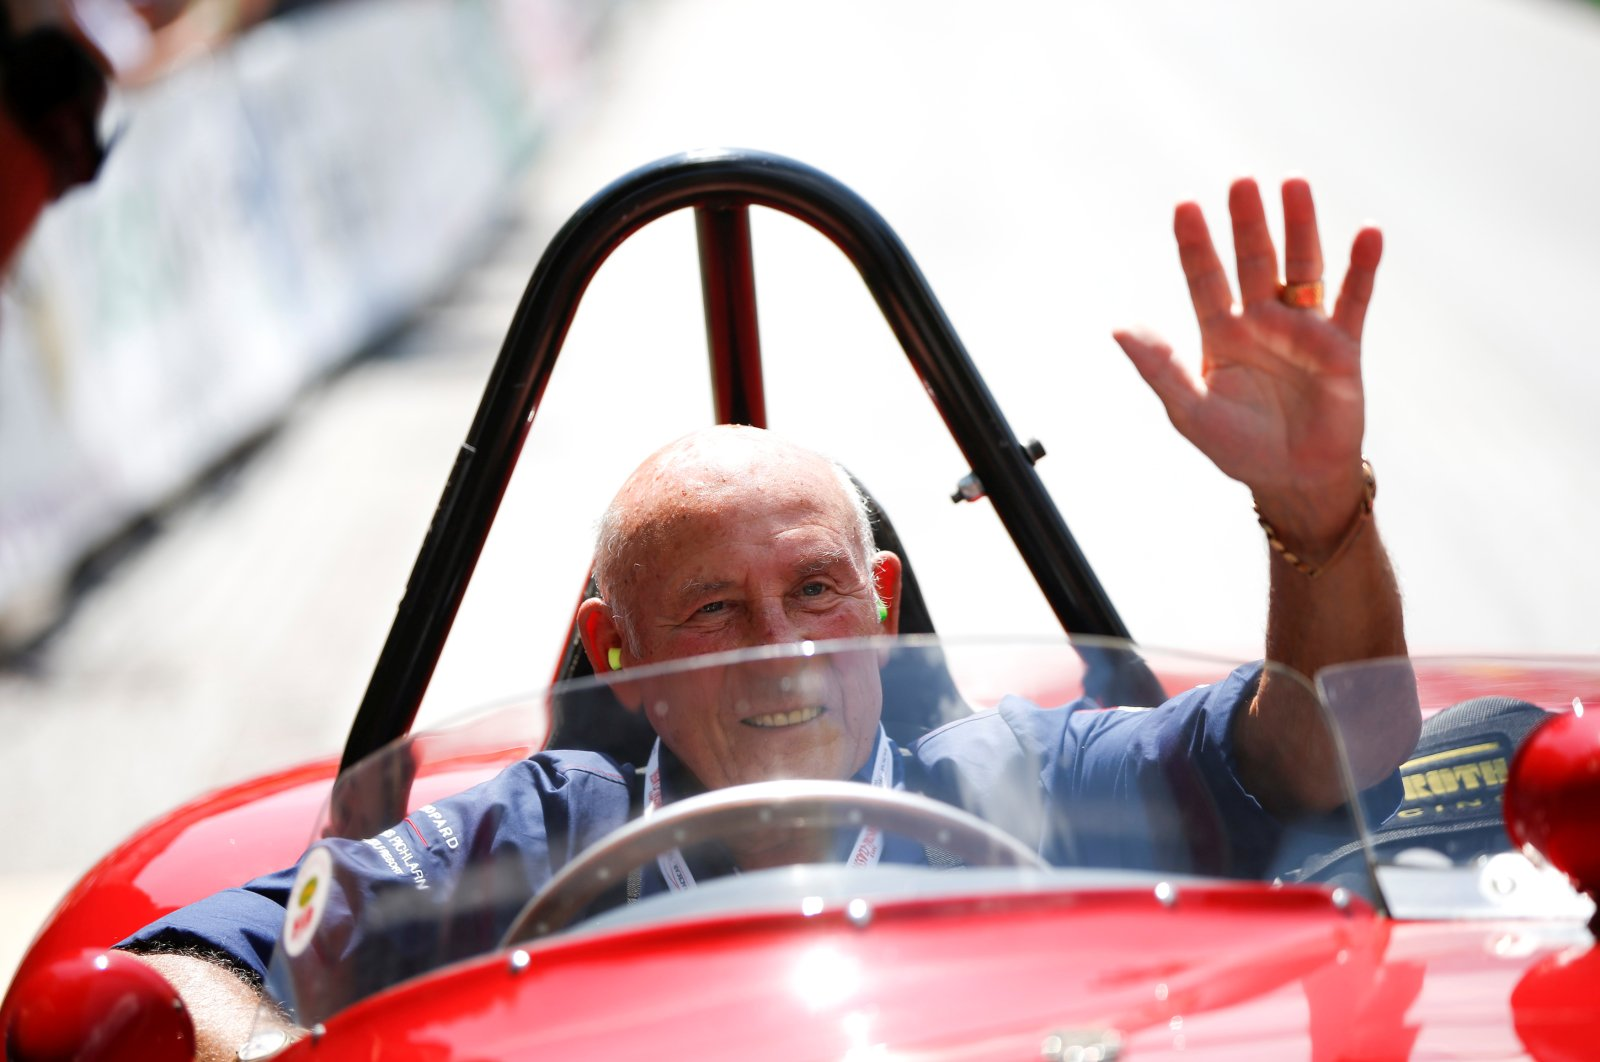 Stirling Moss waves to spectators as he sits in his 1955 Ferrari 750 Monza during the Ennstal Classic rally near the  village of Groebming, Austria,  July 20, 2013. (REUTERS Photo)